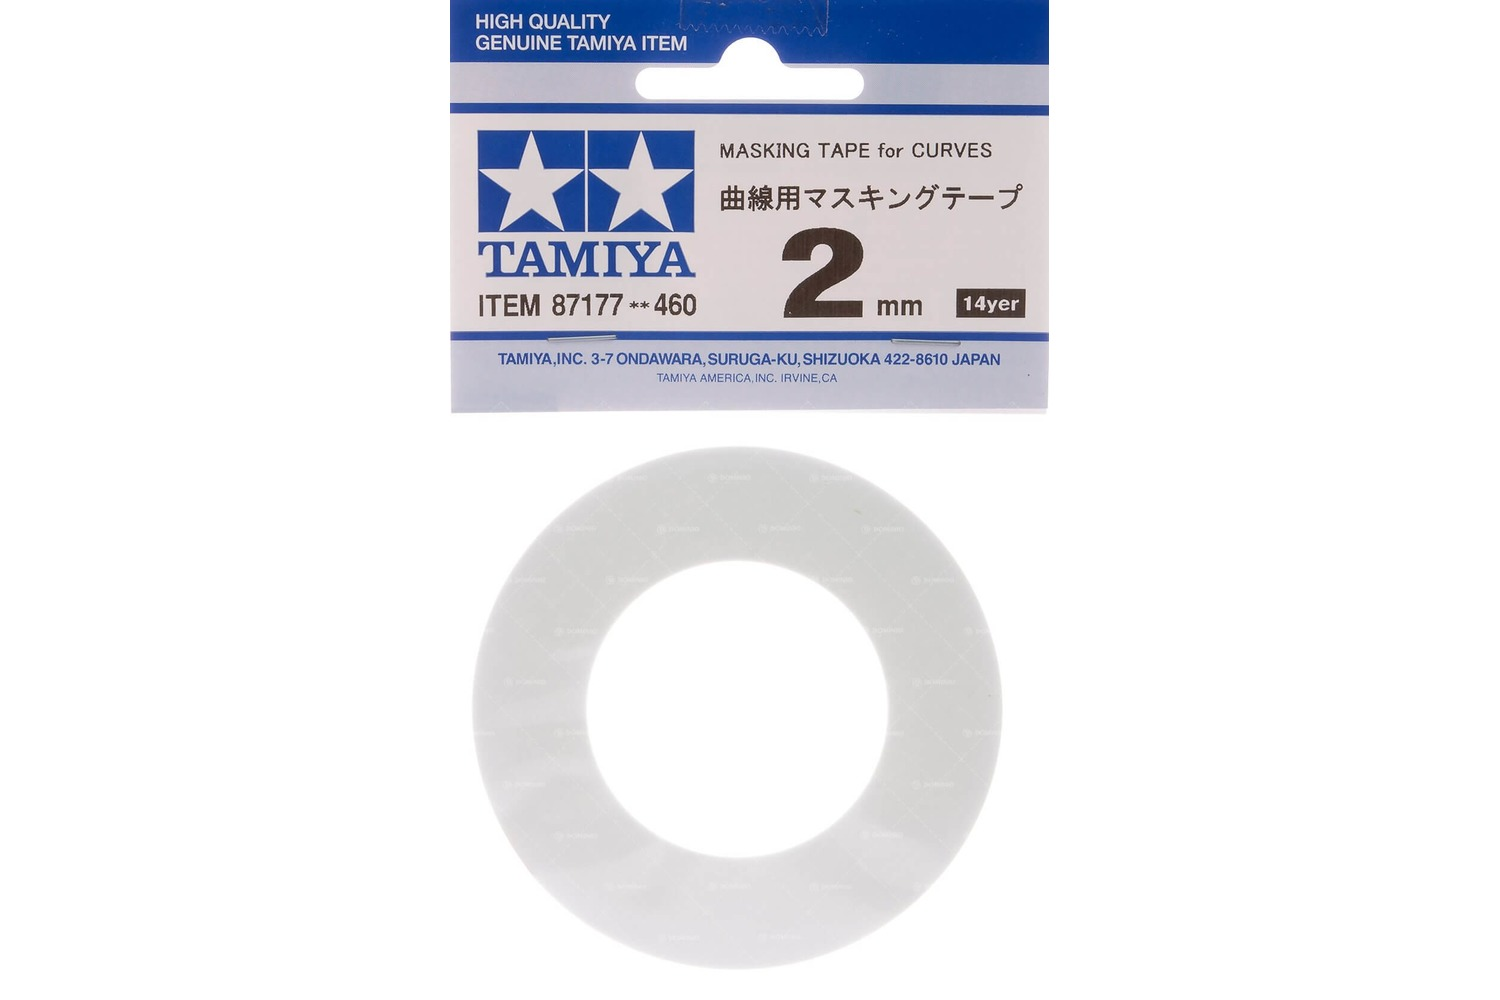 tamiya masking tape for curves review